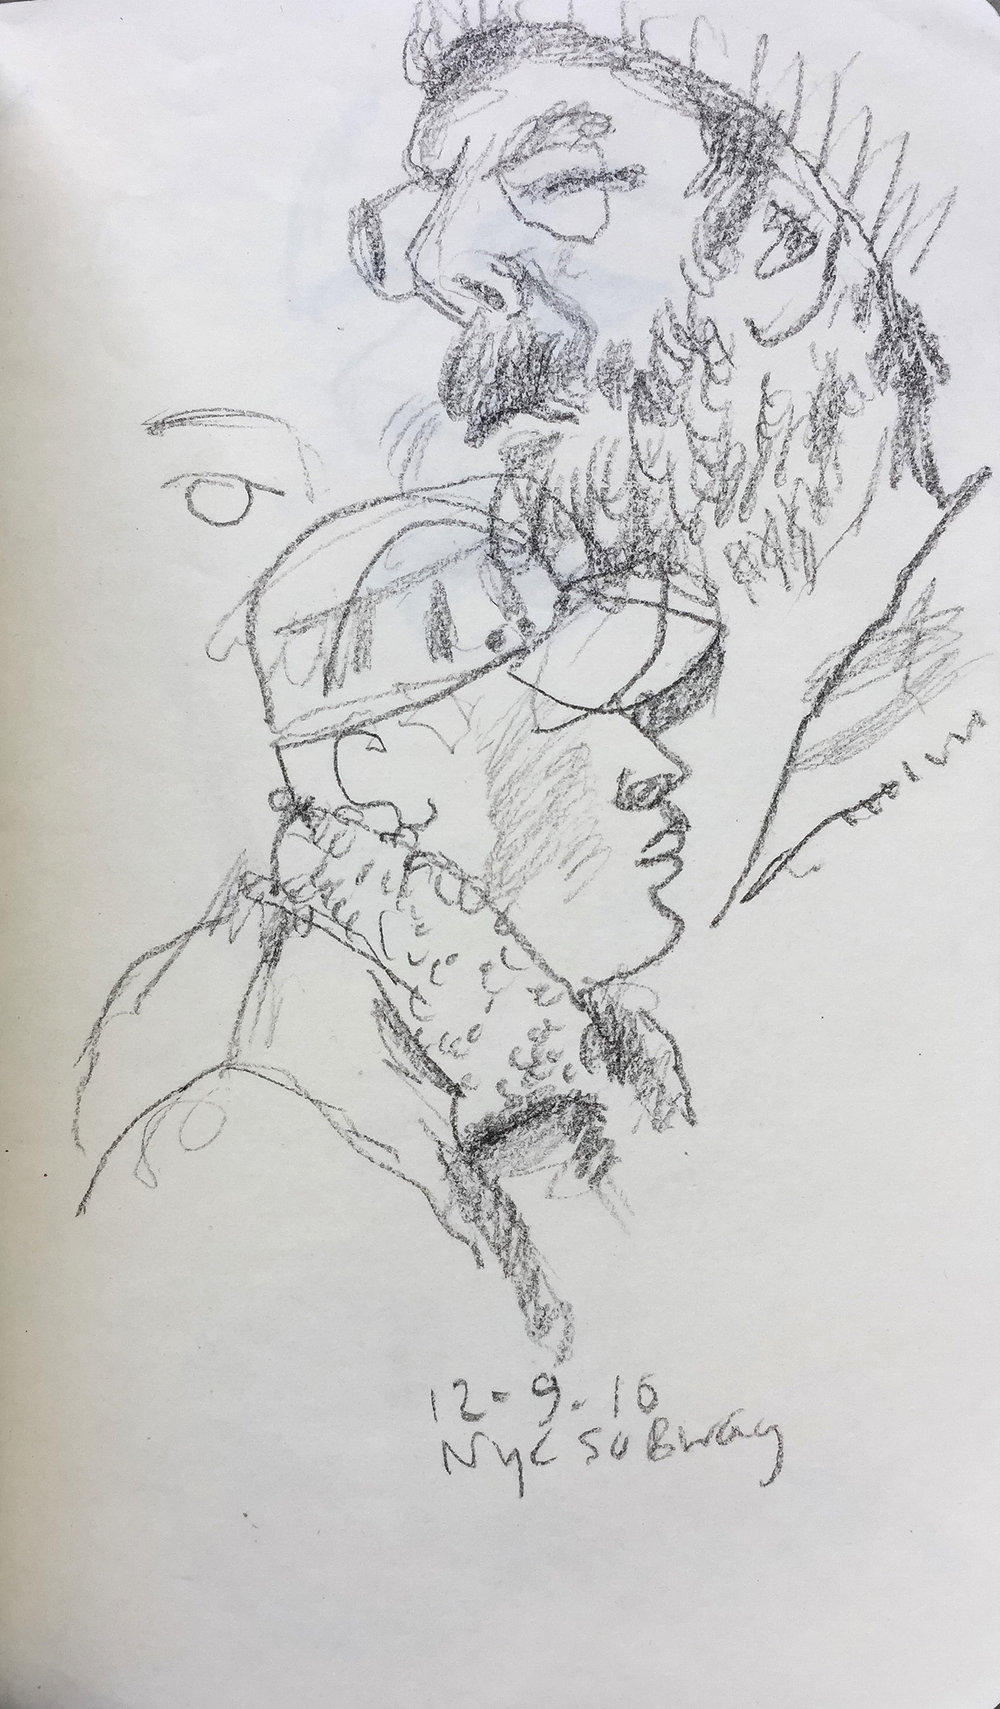 Drawing 12 2010 NYC subway.jpg